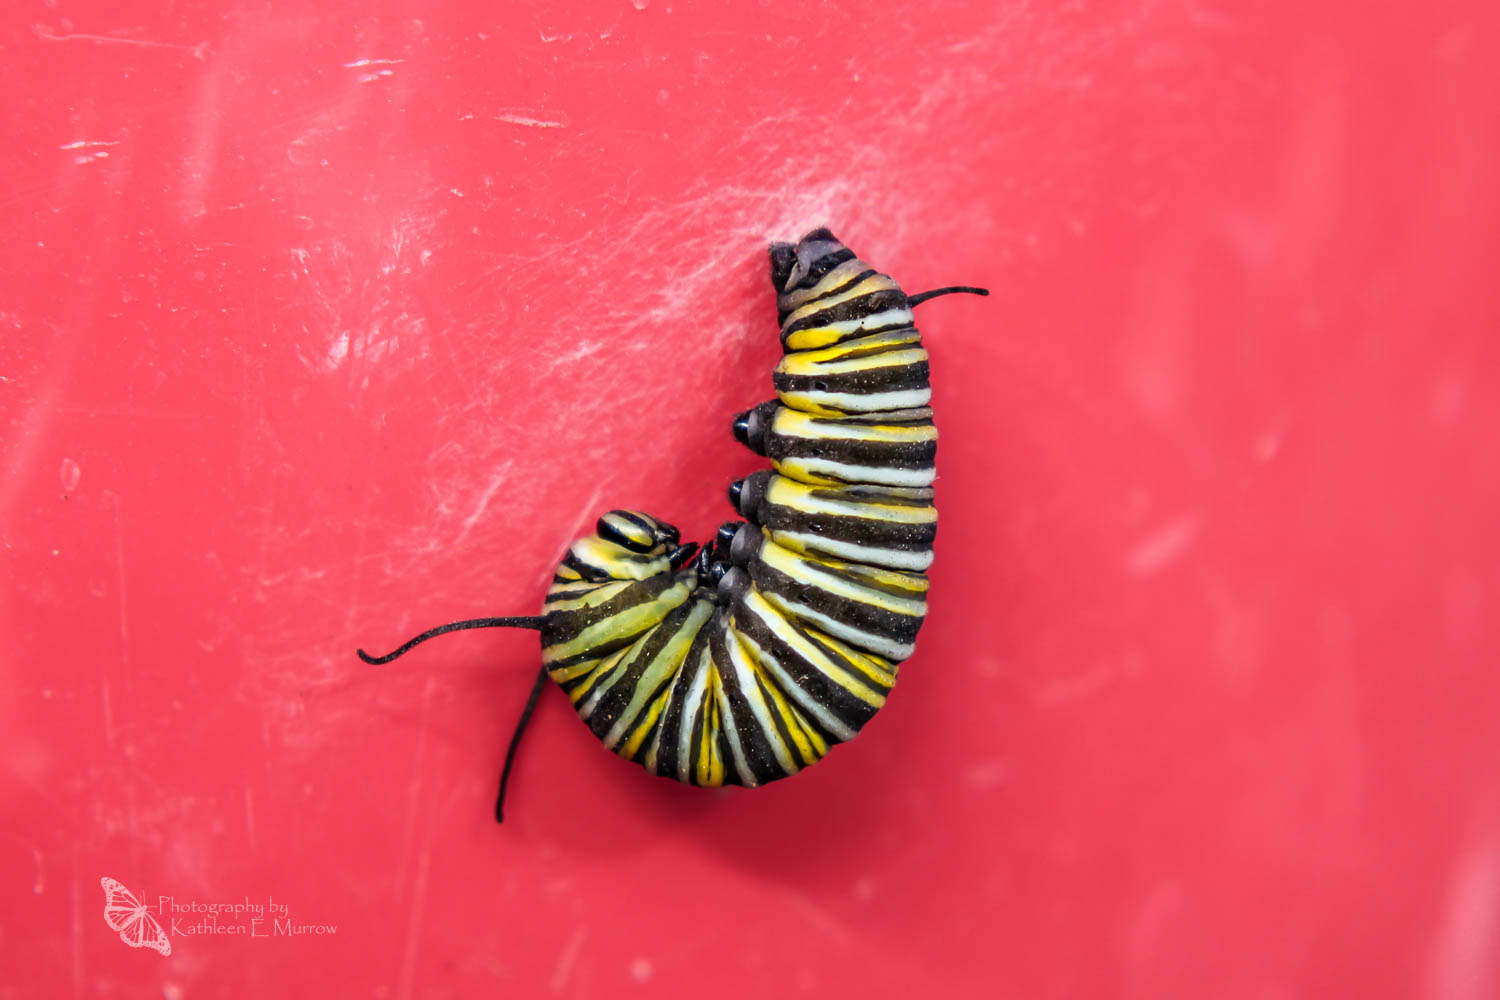 A fifth instar caterpillar of the monarch butterfly hanging in a J, attached to its silk mat, on a red background